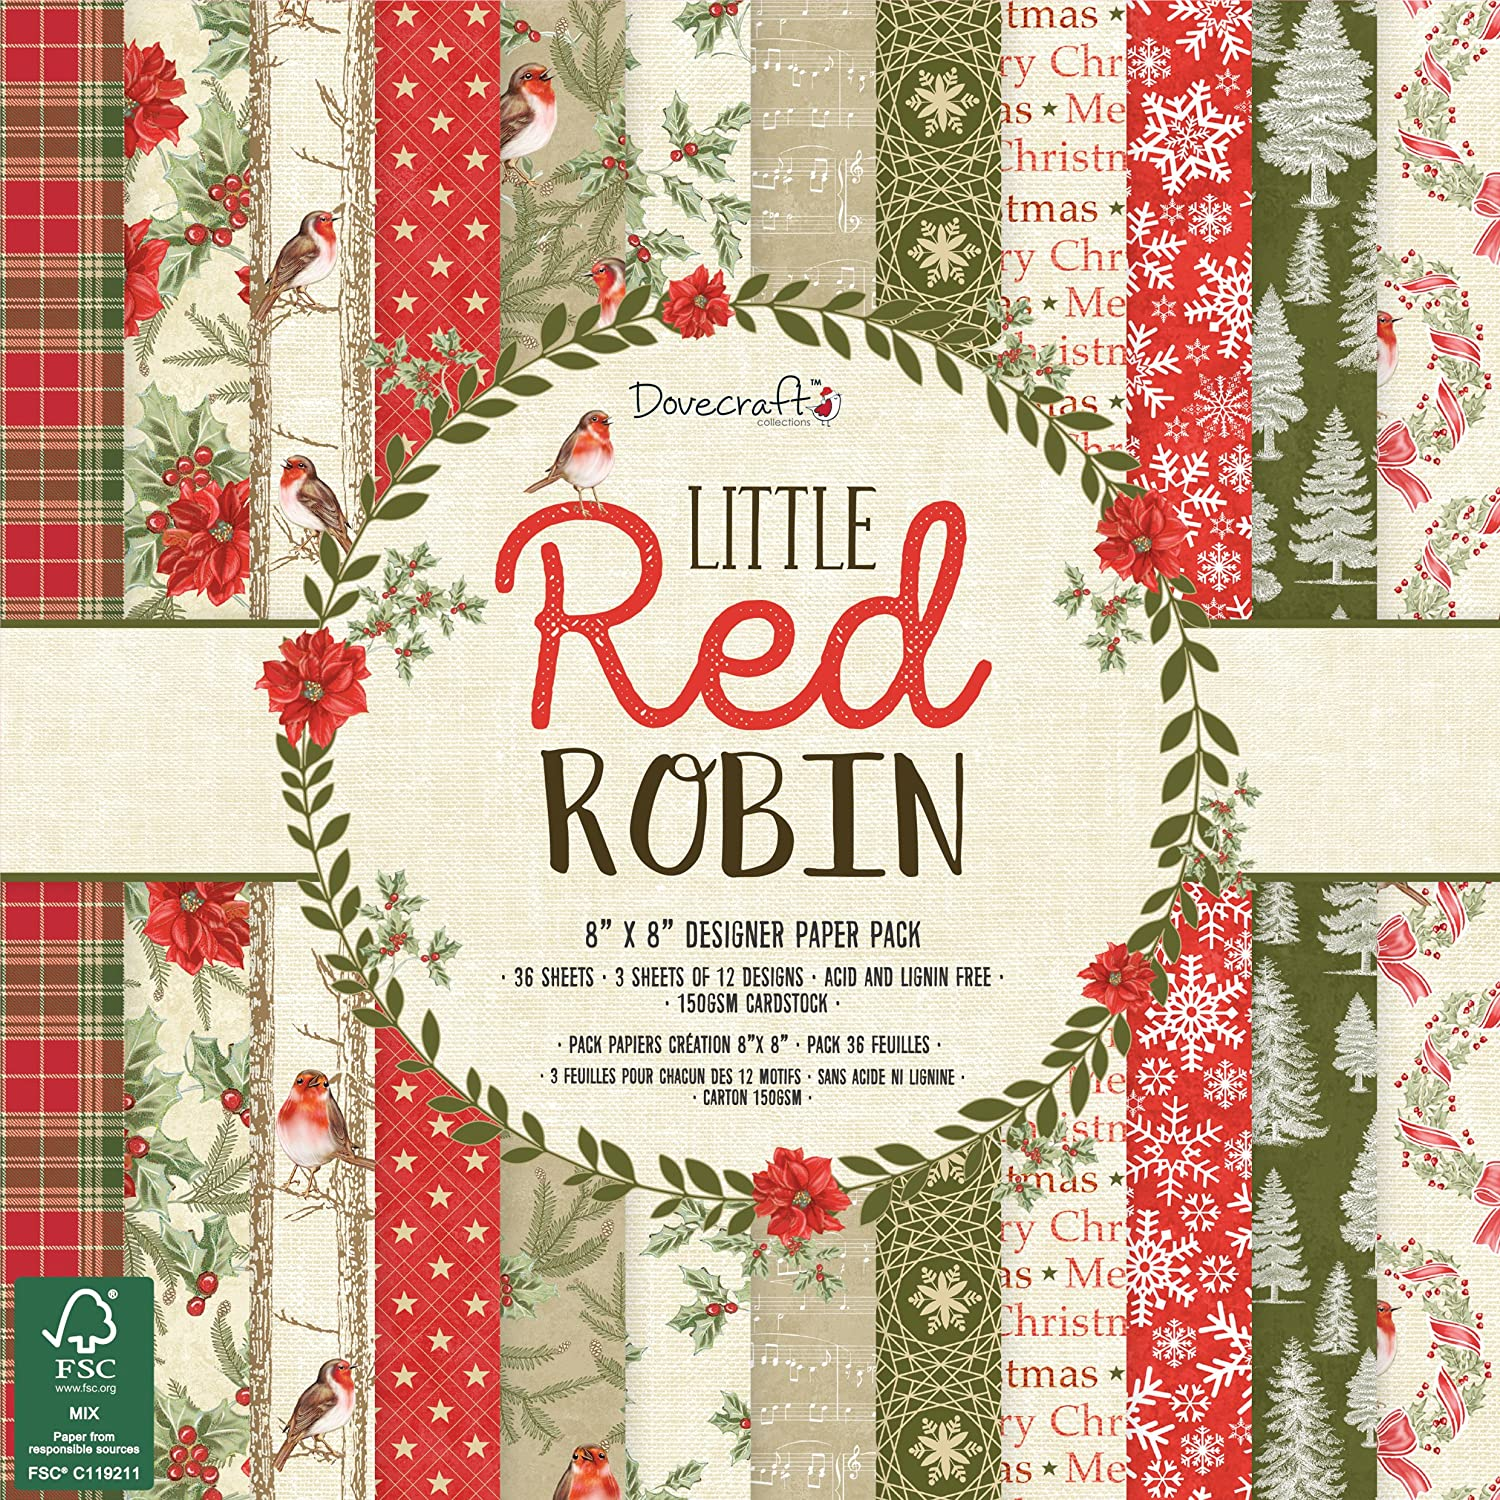 Dovecraft Christmas 2018 Collection Little Red Robin Paper Pack 8